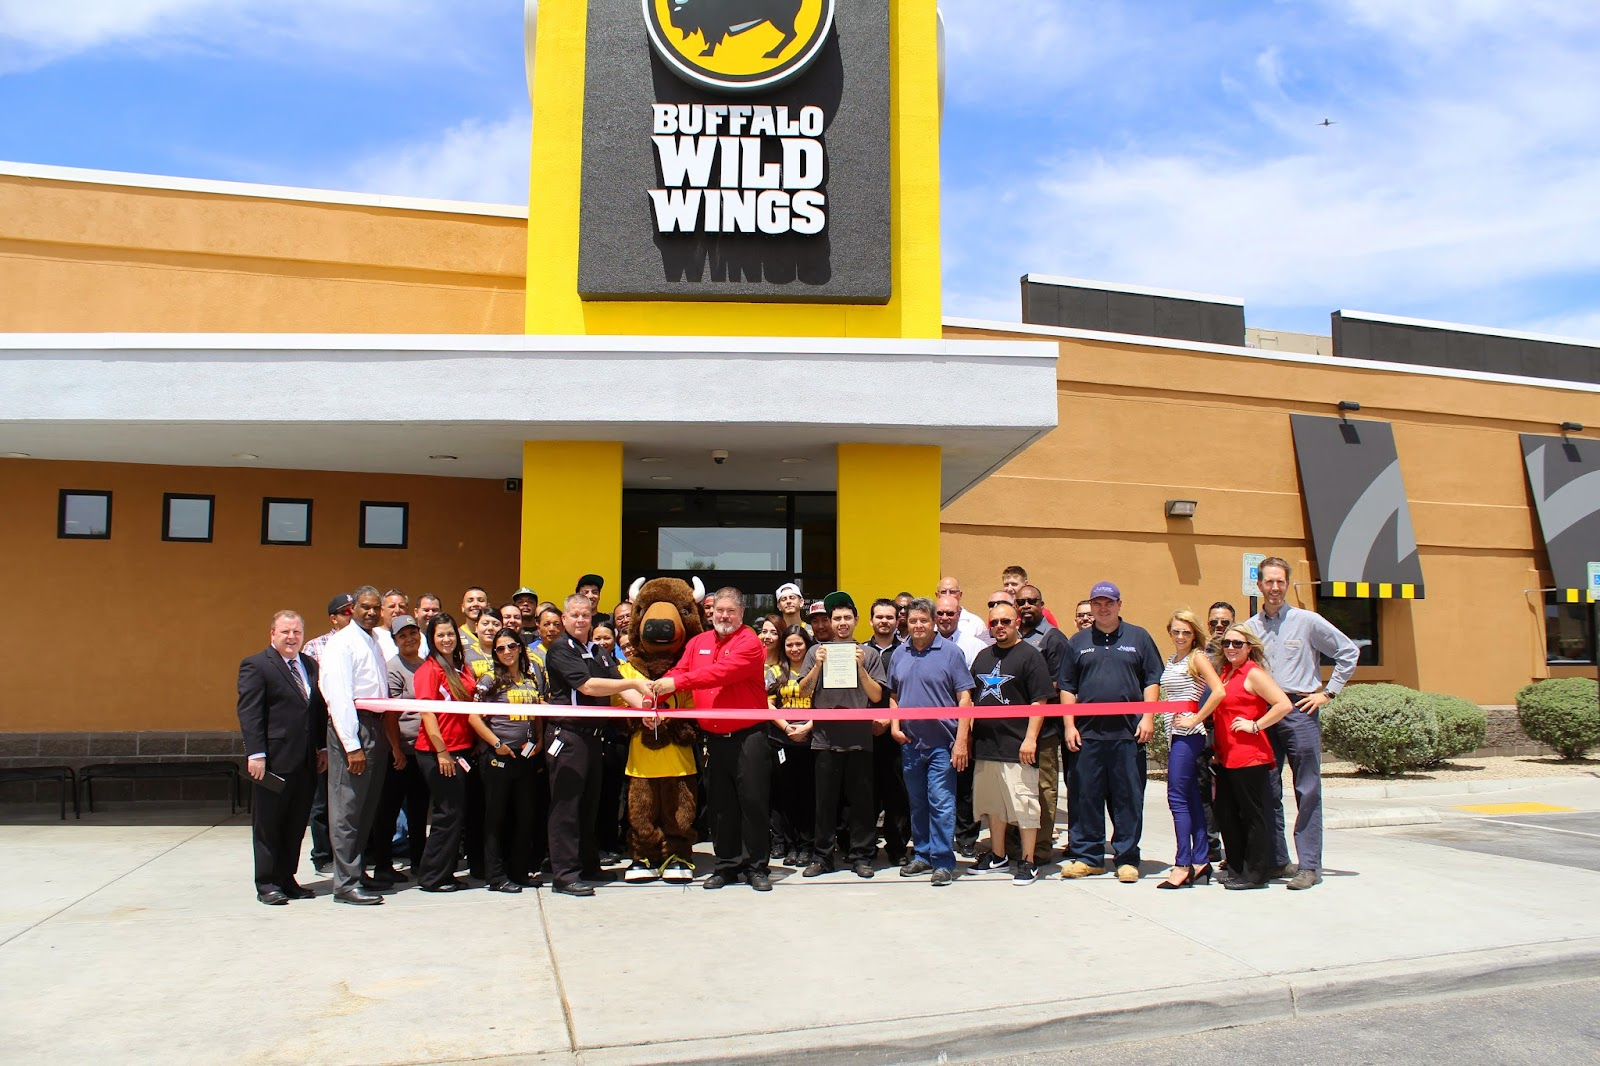 The Tucson-Irvington Rd Buffalo Wild Wings will boast a brand new interior including updated TVs and AV Package so that guests can enjoy hot wings, cold beer, and sports on dozens of big screens in a refreshed atmosphere.  Buffalo Wild Wings 1390 West Irvington Rd (520) 799-9464